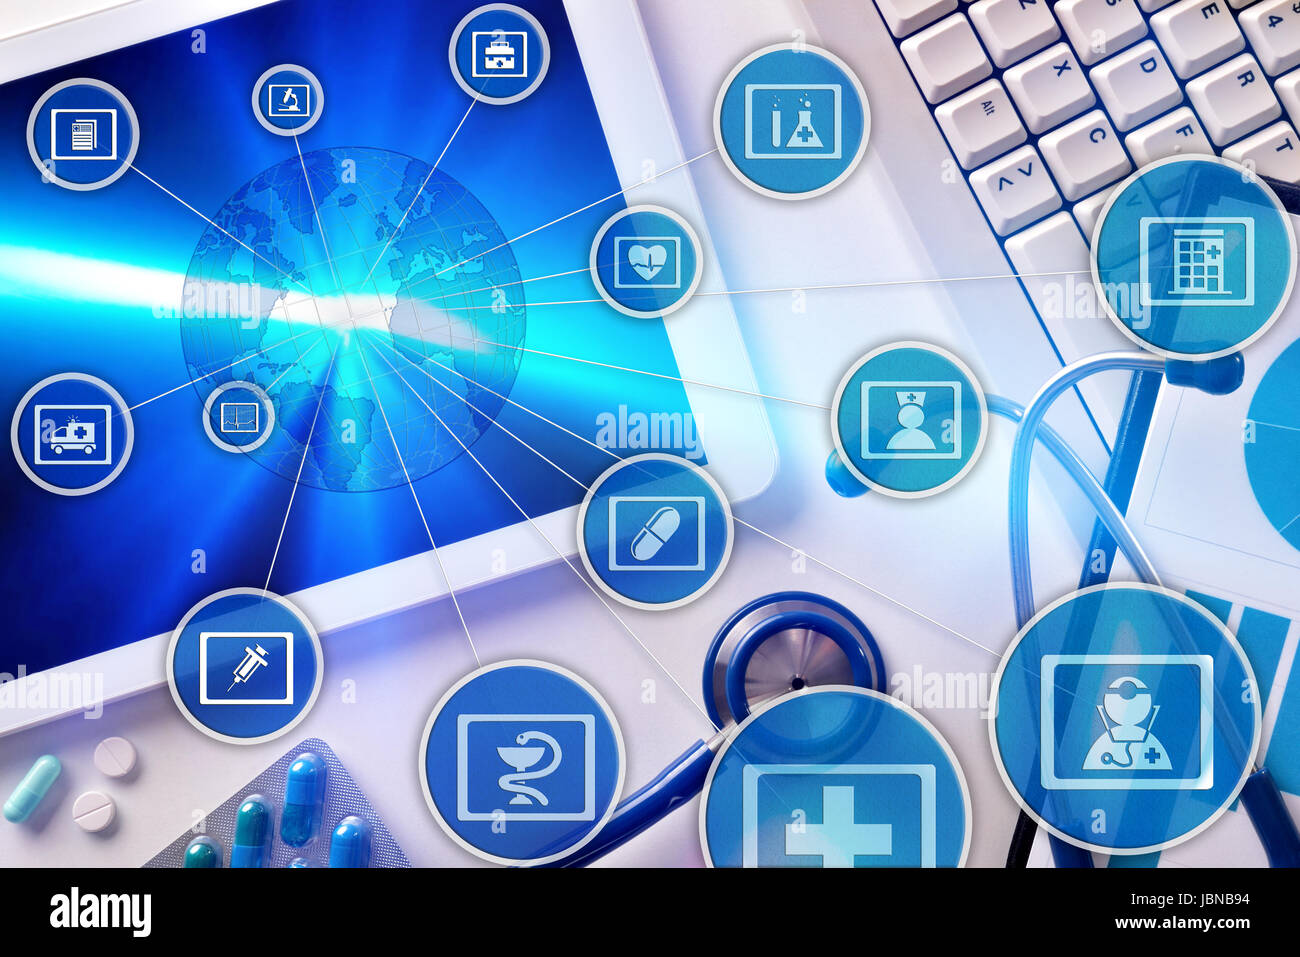 Diagram of the communication of fields of medicine and globalization online - Stock Image